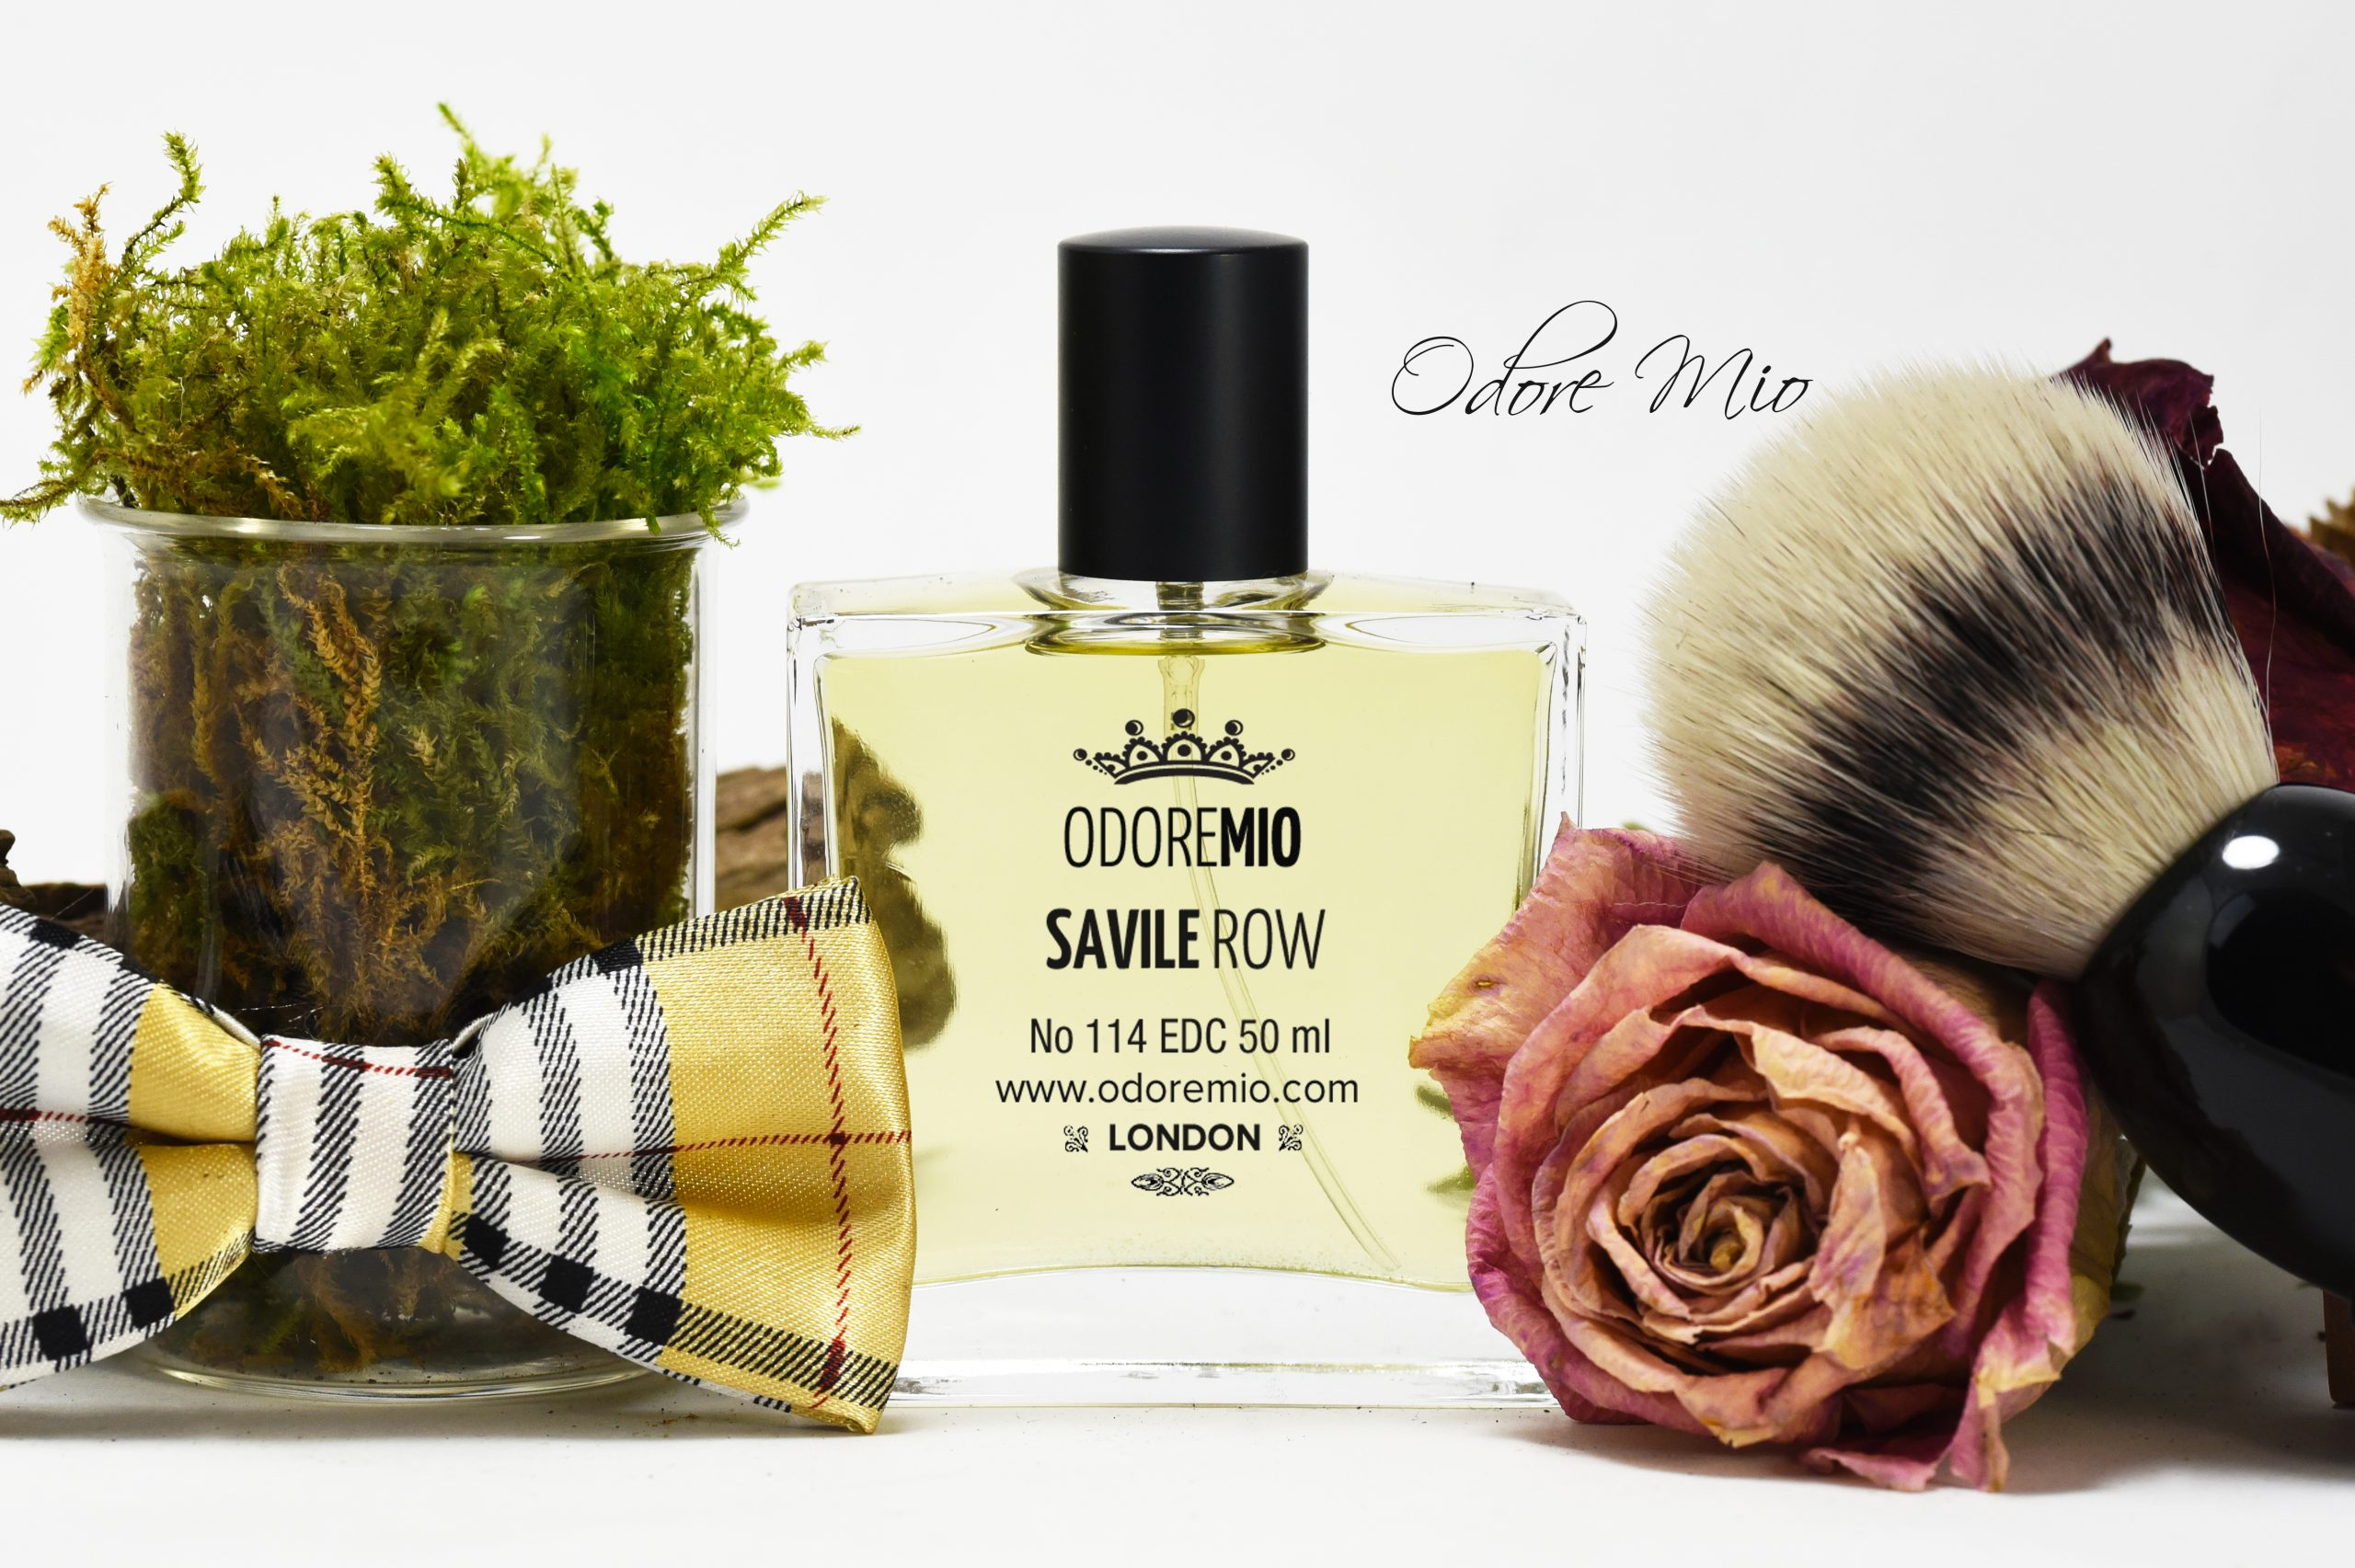 Odore Mio Savile Row Cologne Natural Perfume Spray